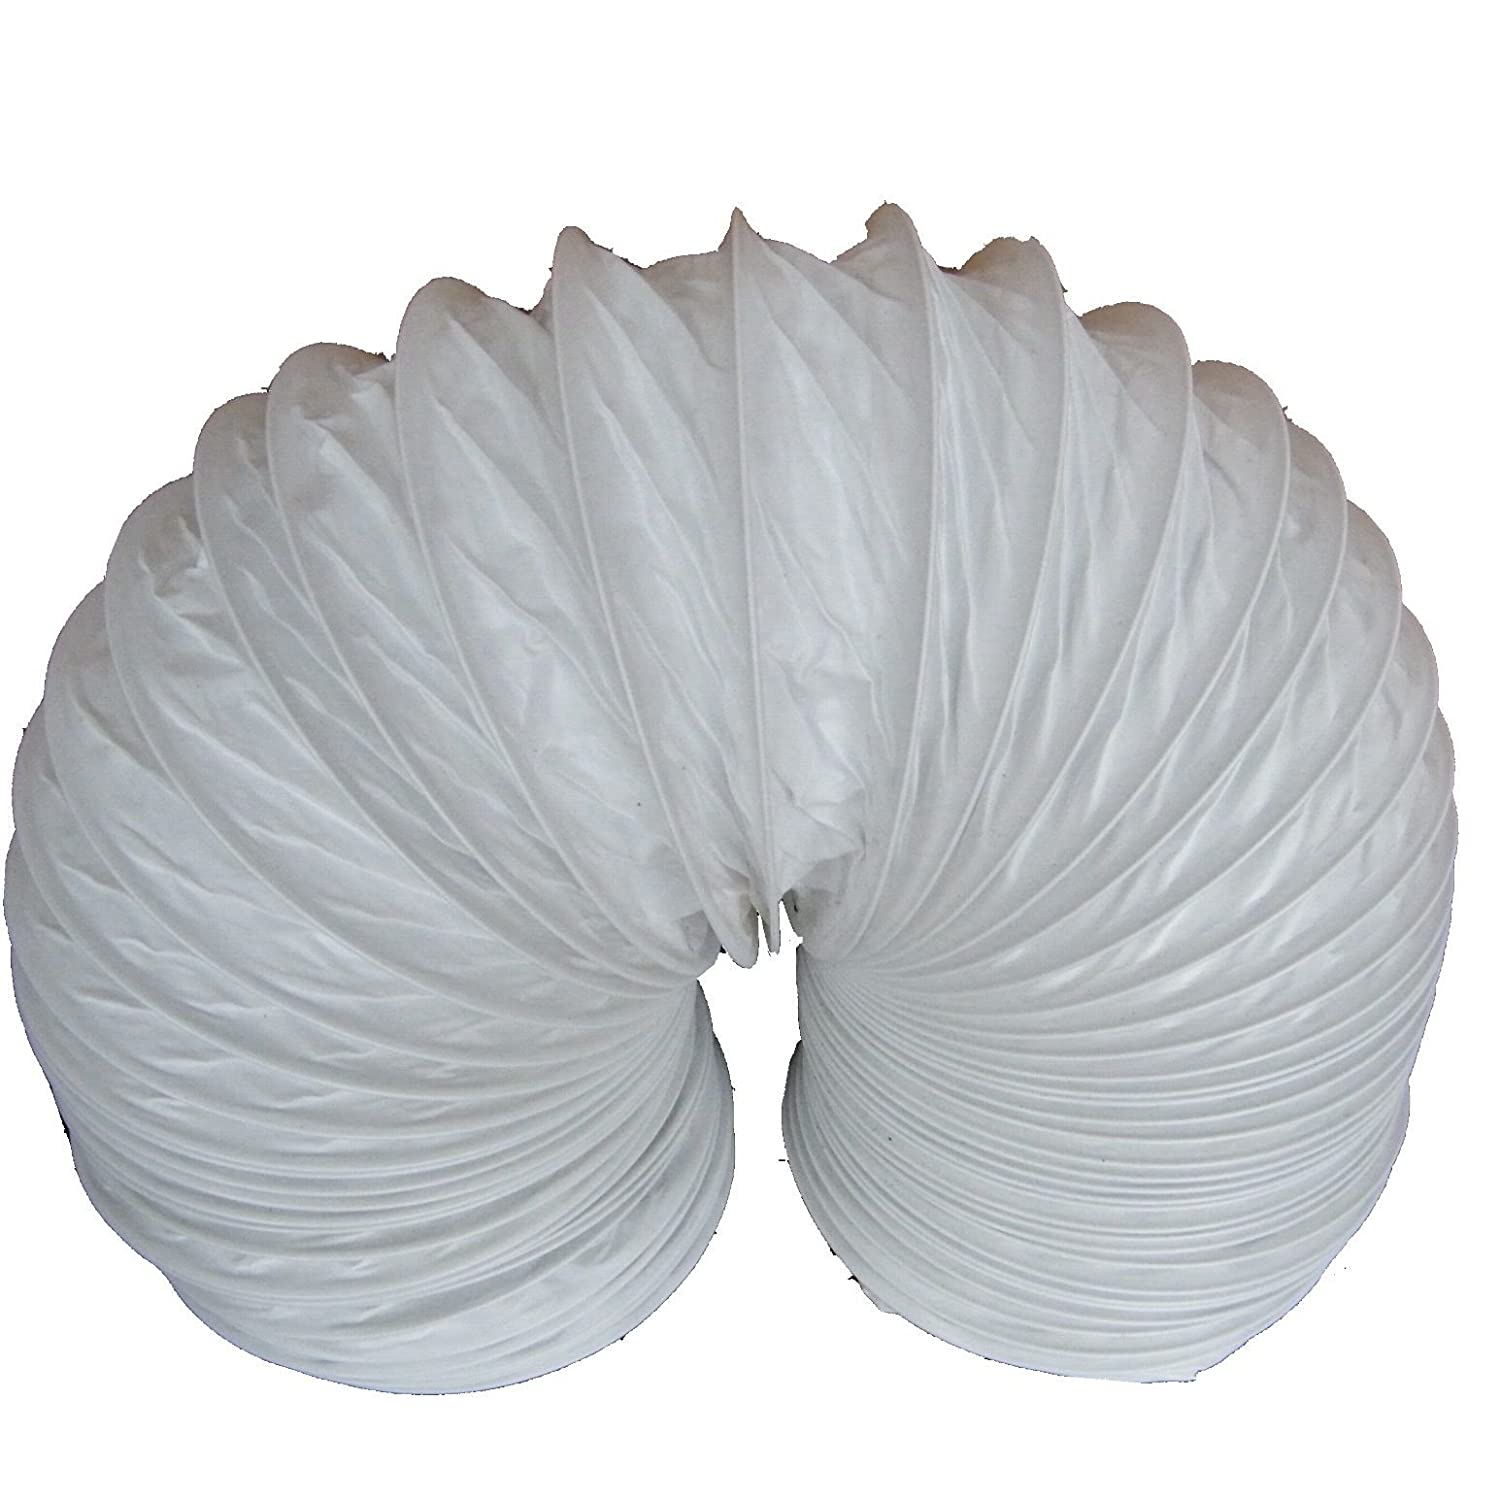 100mm x 45m metre 4' White PVC Round Flexible Ducting/Tumble dryer Hose/Flexi hose Verplas